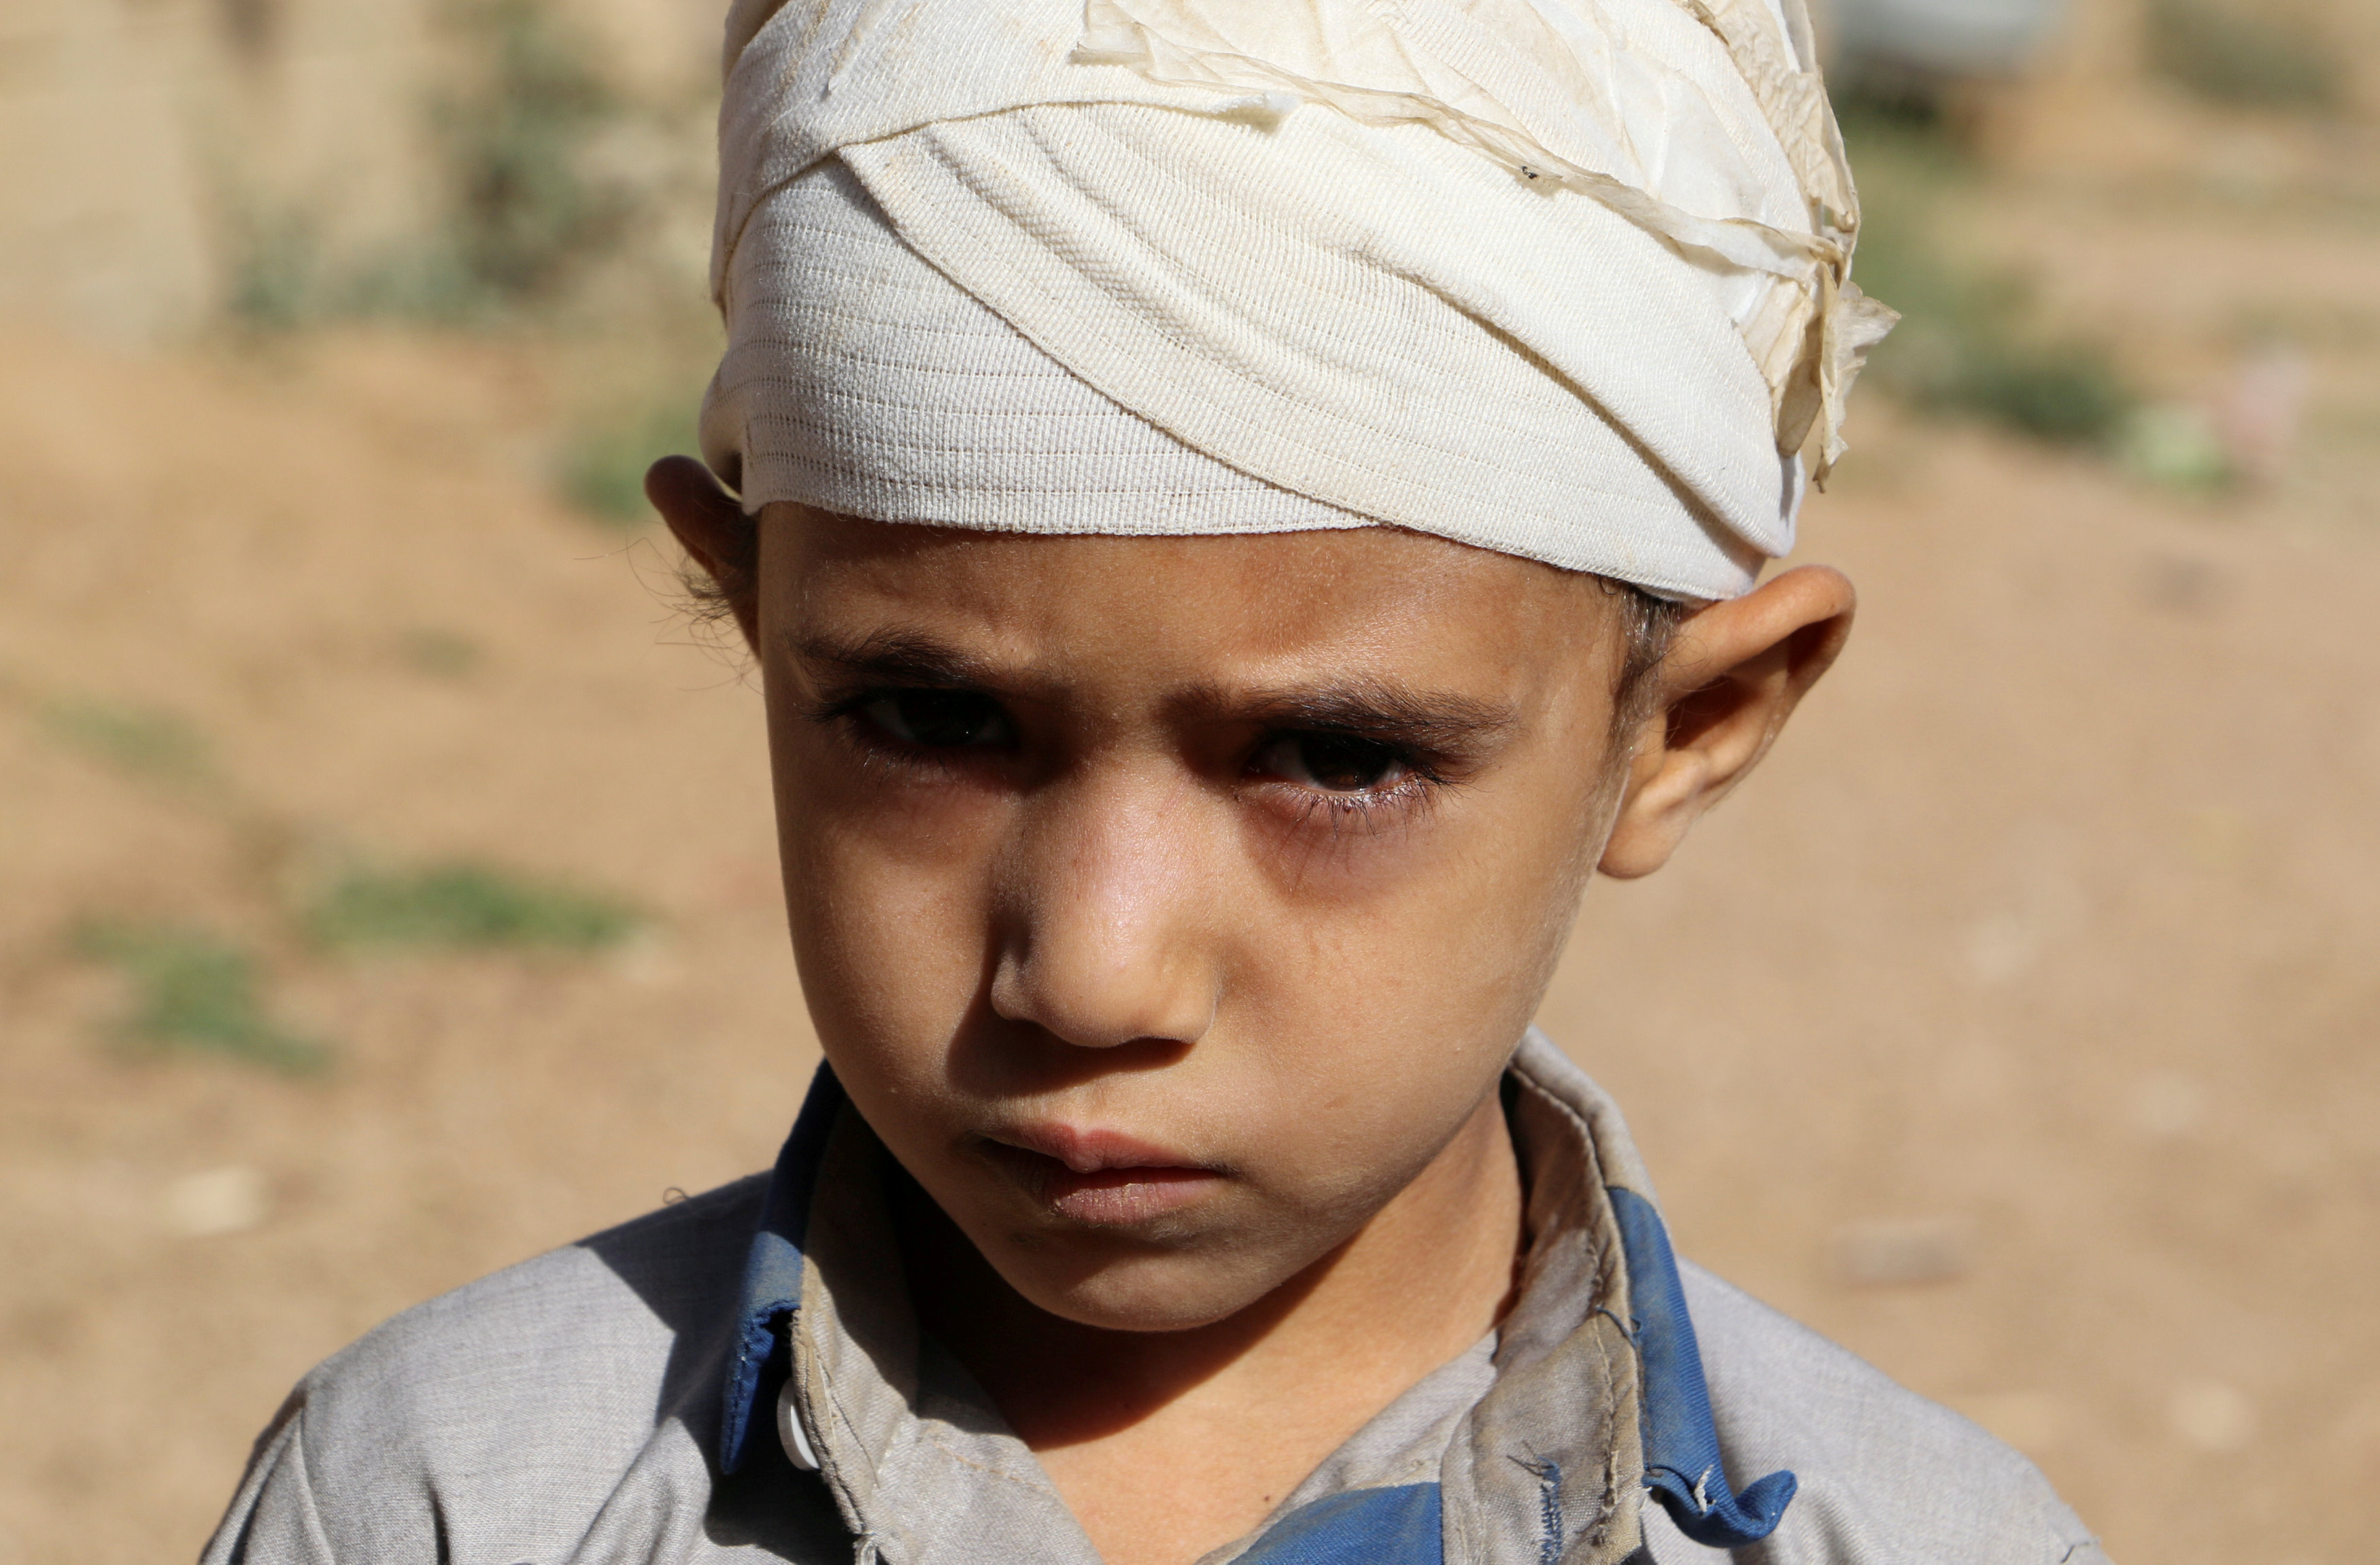 FILE PHOTO: Mukhtar Hadi, who survived a Saudi-led air strike that killed dozens including children, stands outside his house in Saada, Yemen September 4, 2018. Picture taken September 4, 2018. REUTERS/Naif Rahma/File Photo